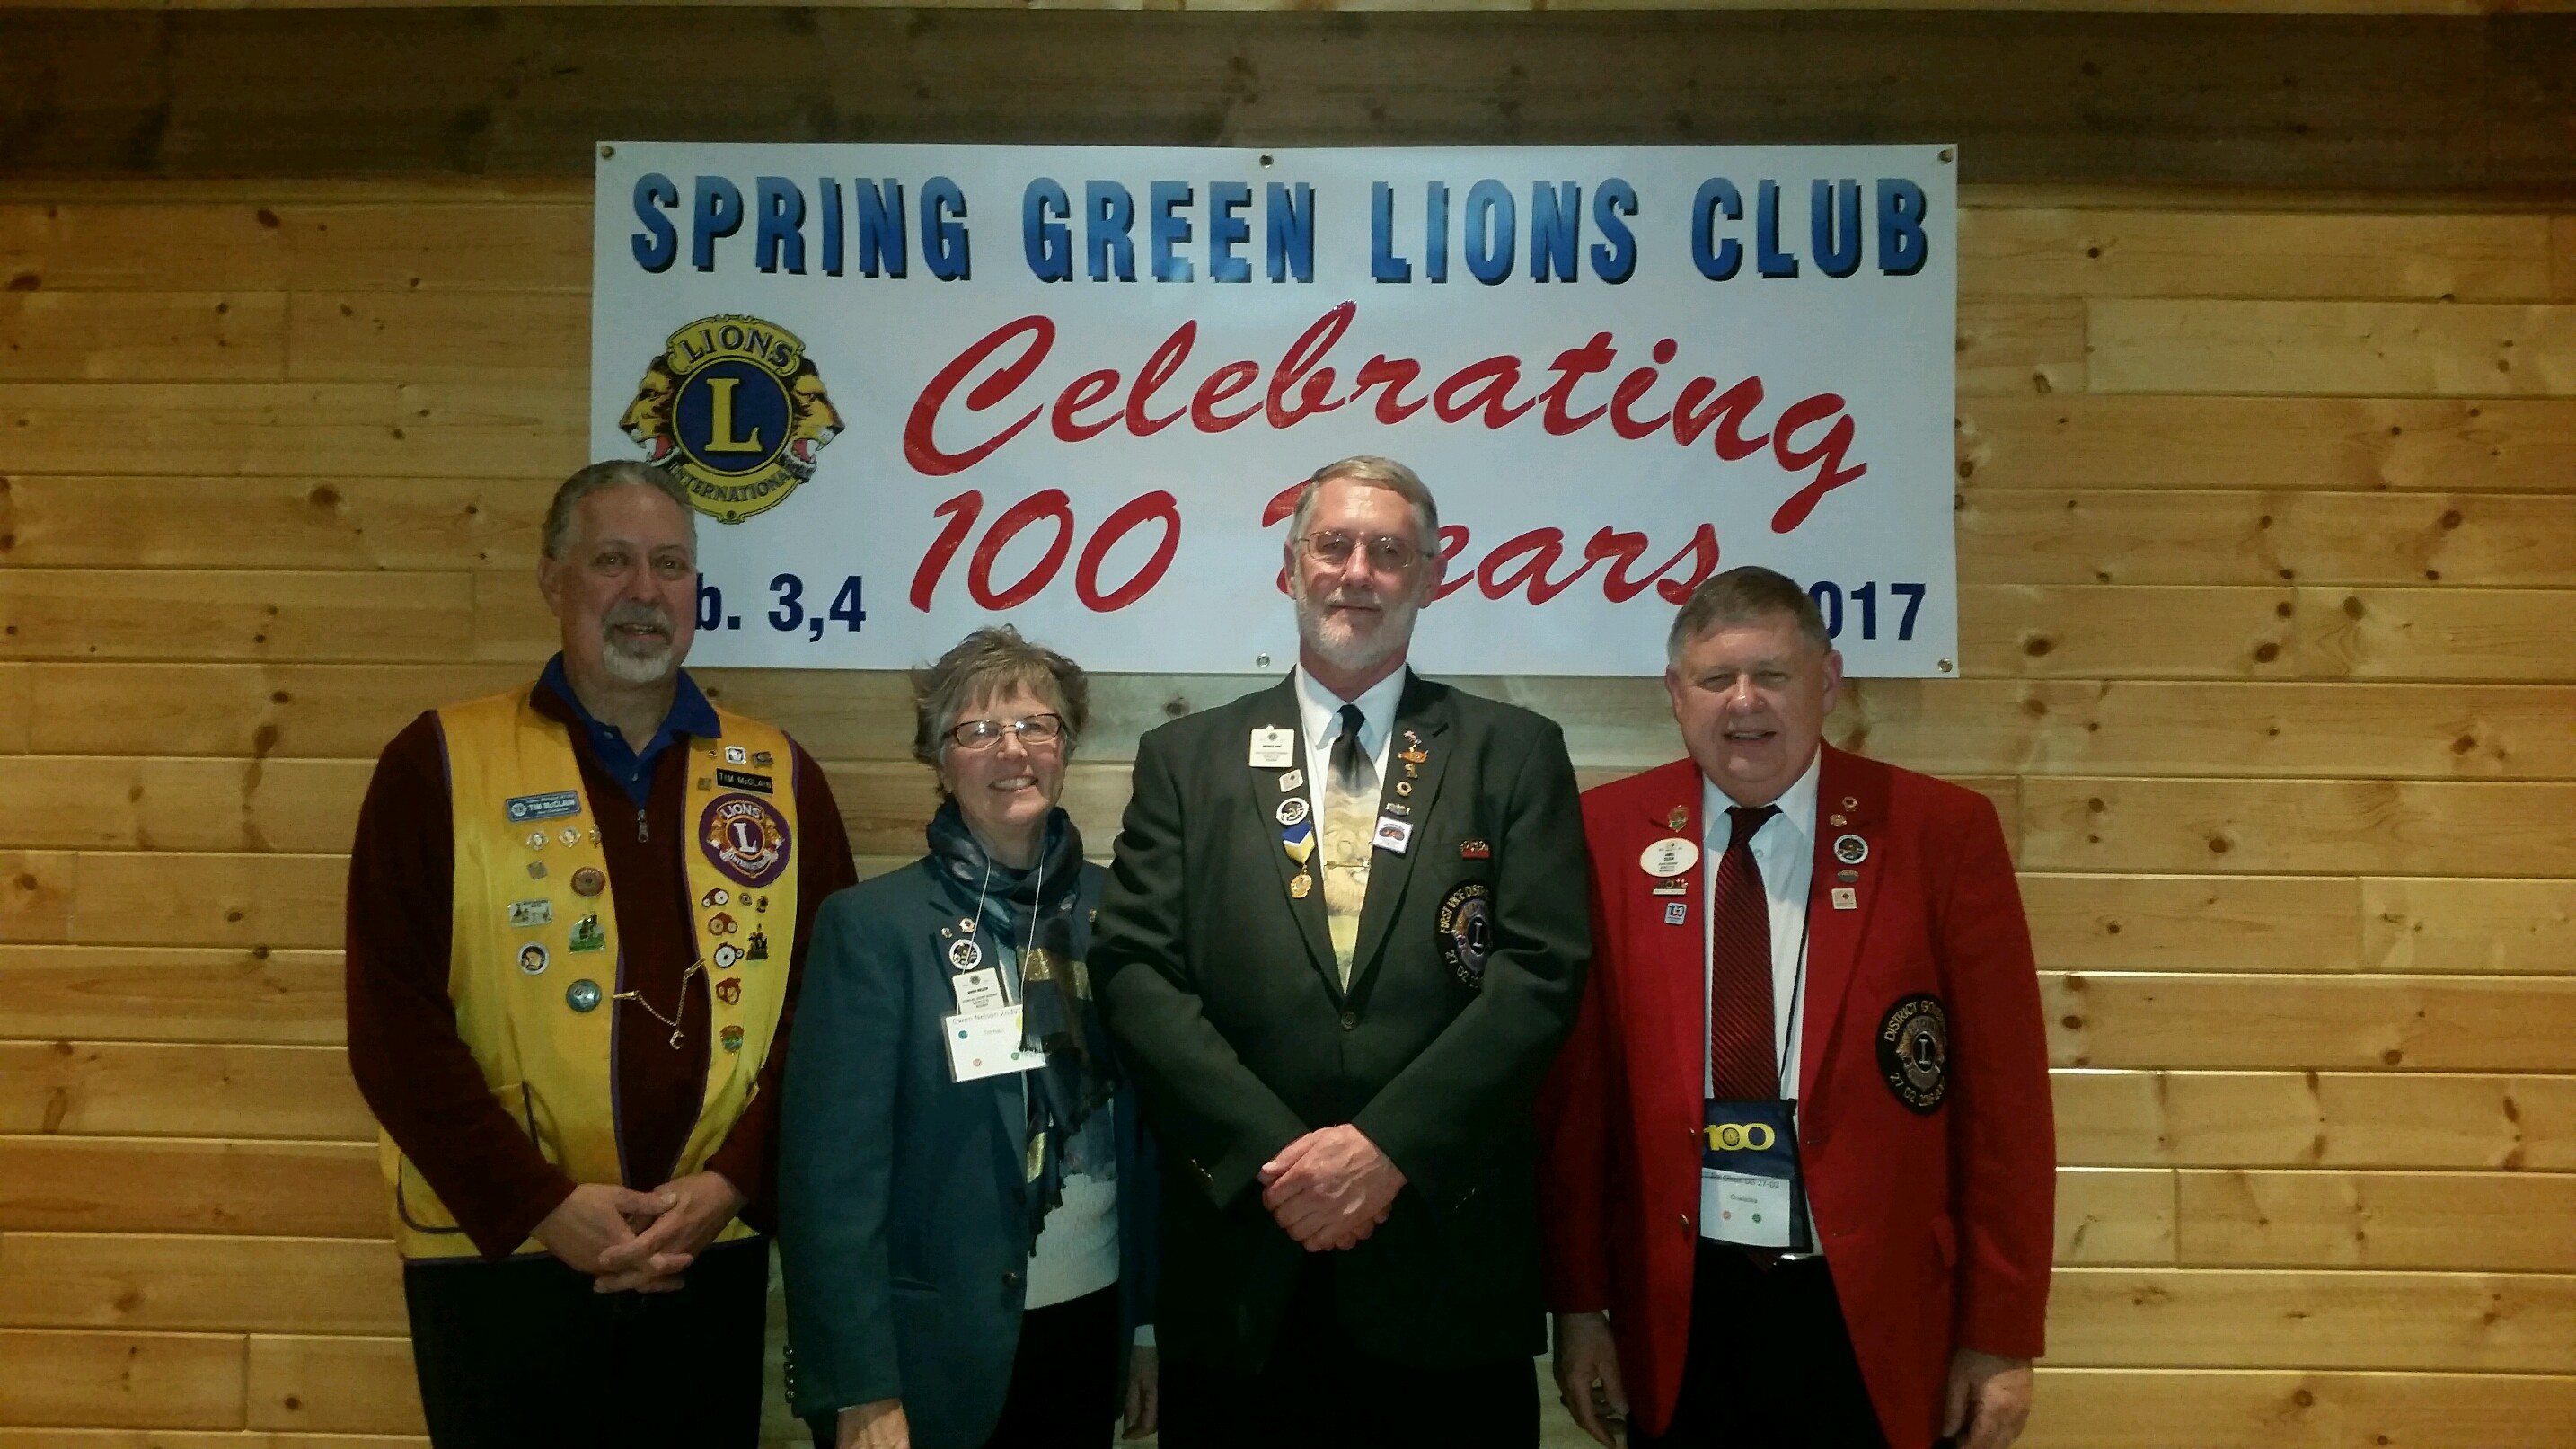 2017 Wisconsin Lions 27D2 District Convention District Governors